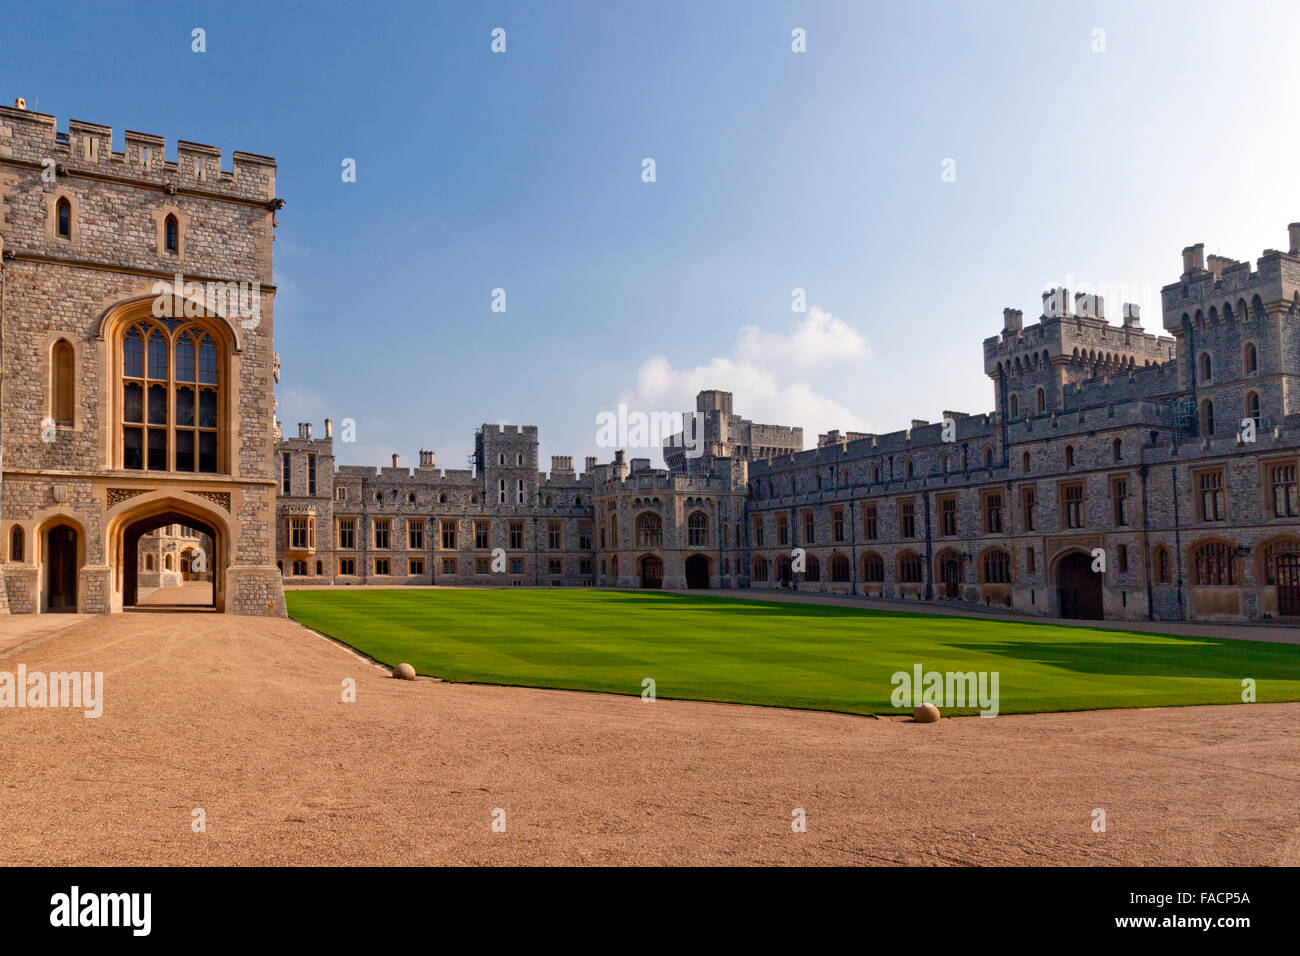 The Visitor's (right) and Private Apartments (centre)  at Windsor Castle, Berkshire, England, UK - Stock Image